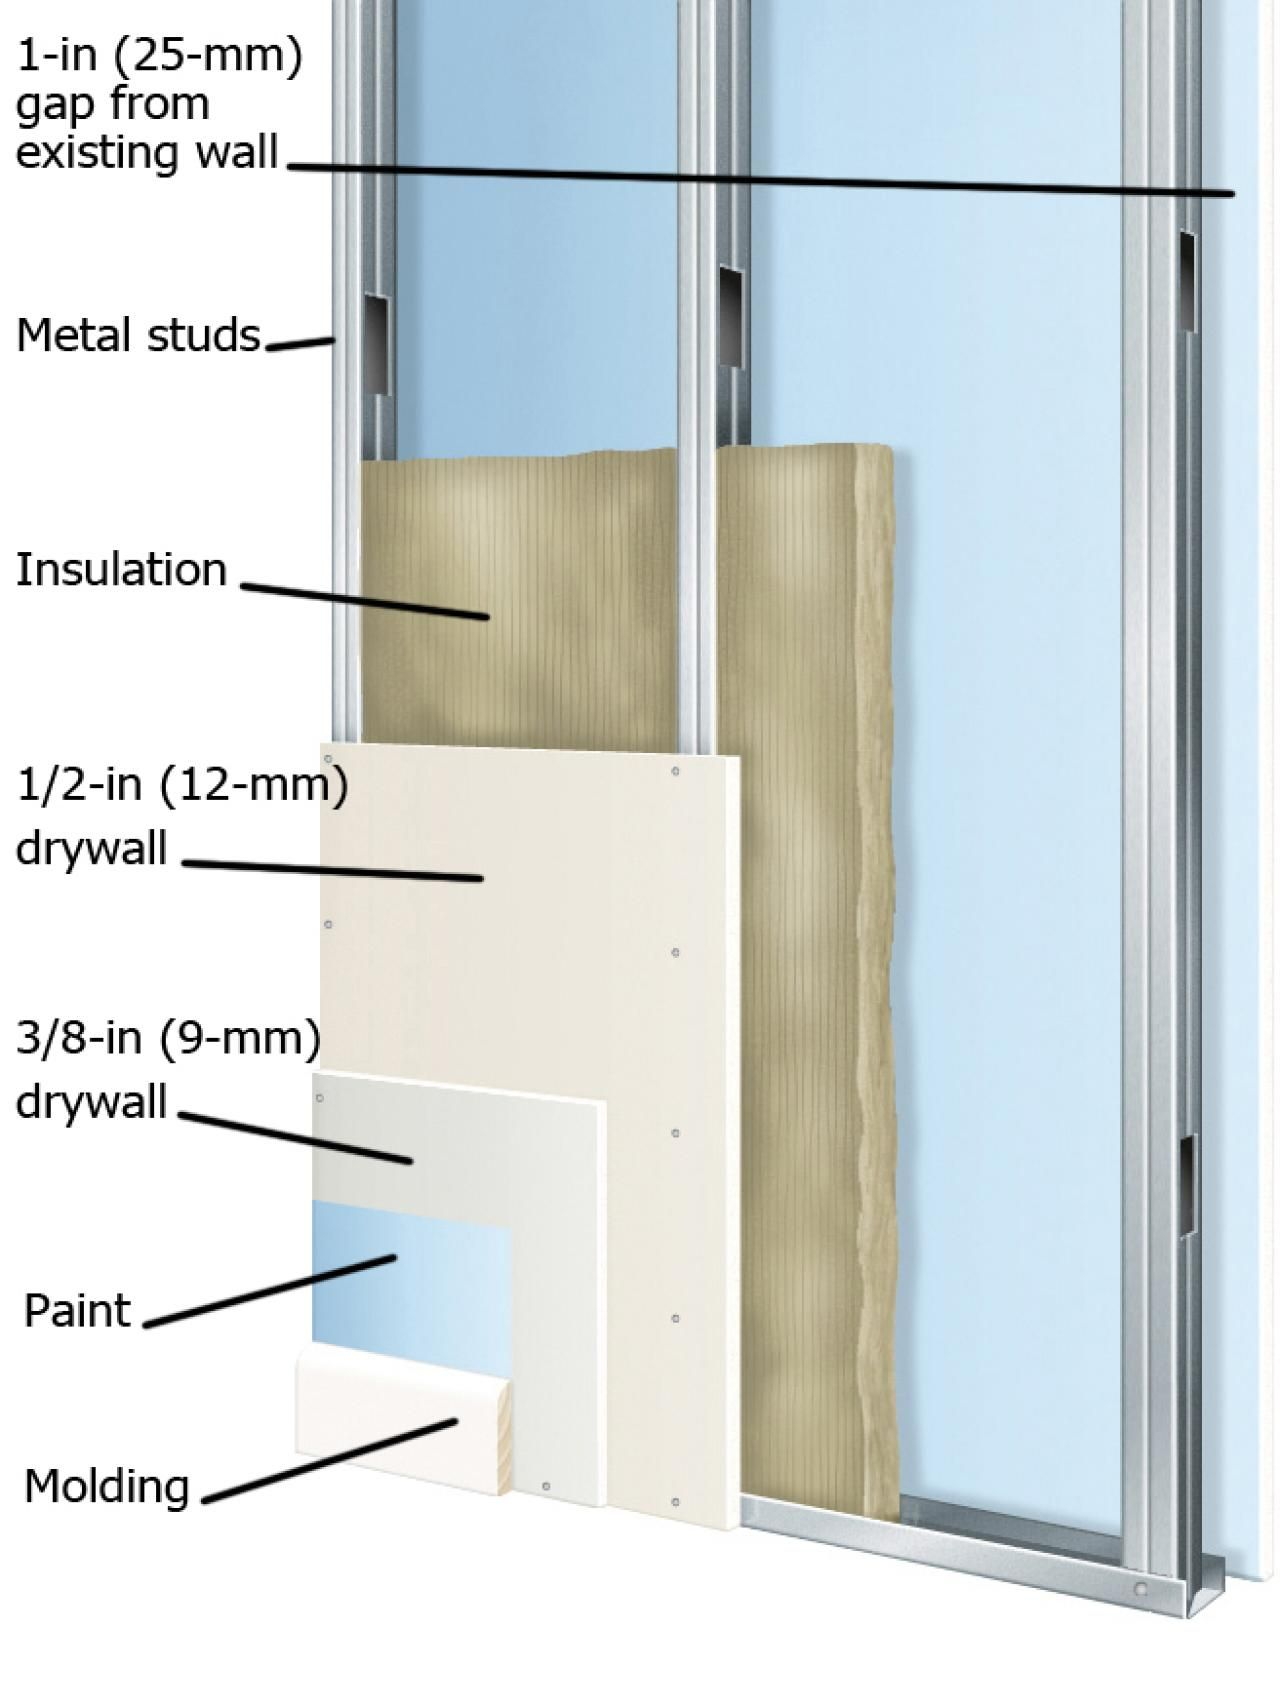 Soundproofing a Wall | Pinterest | Walls, Room and Insulation